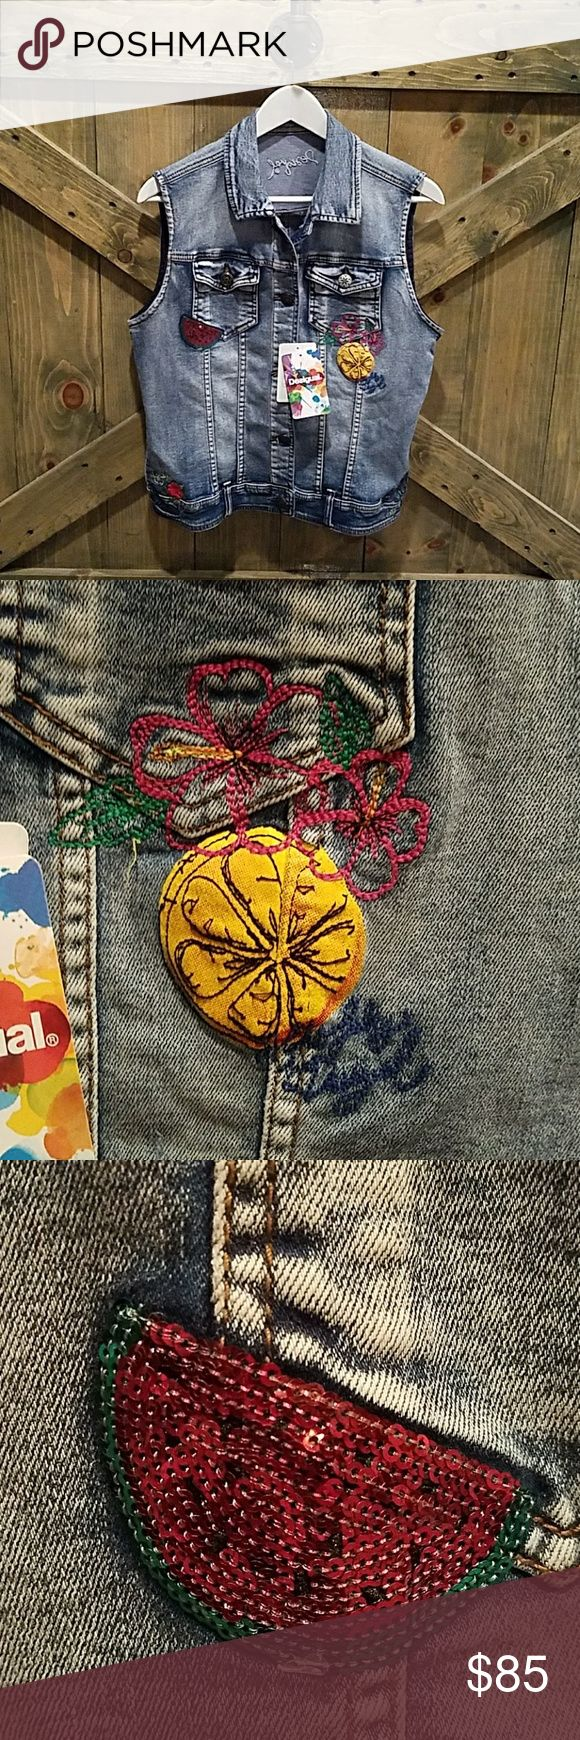 NWT DESIGUAL JEAN VEST Rock this Designer Vest with too cute embellishments. All buttons present, excellent condition.  Size 42/USA SIZE 8. STYLE NUMBER 55E29K5/5053, no rips or stains. Desigual Jackets & Coats Vests